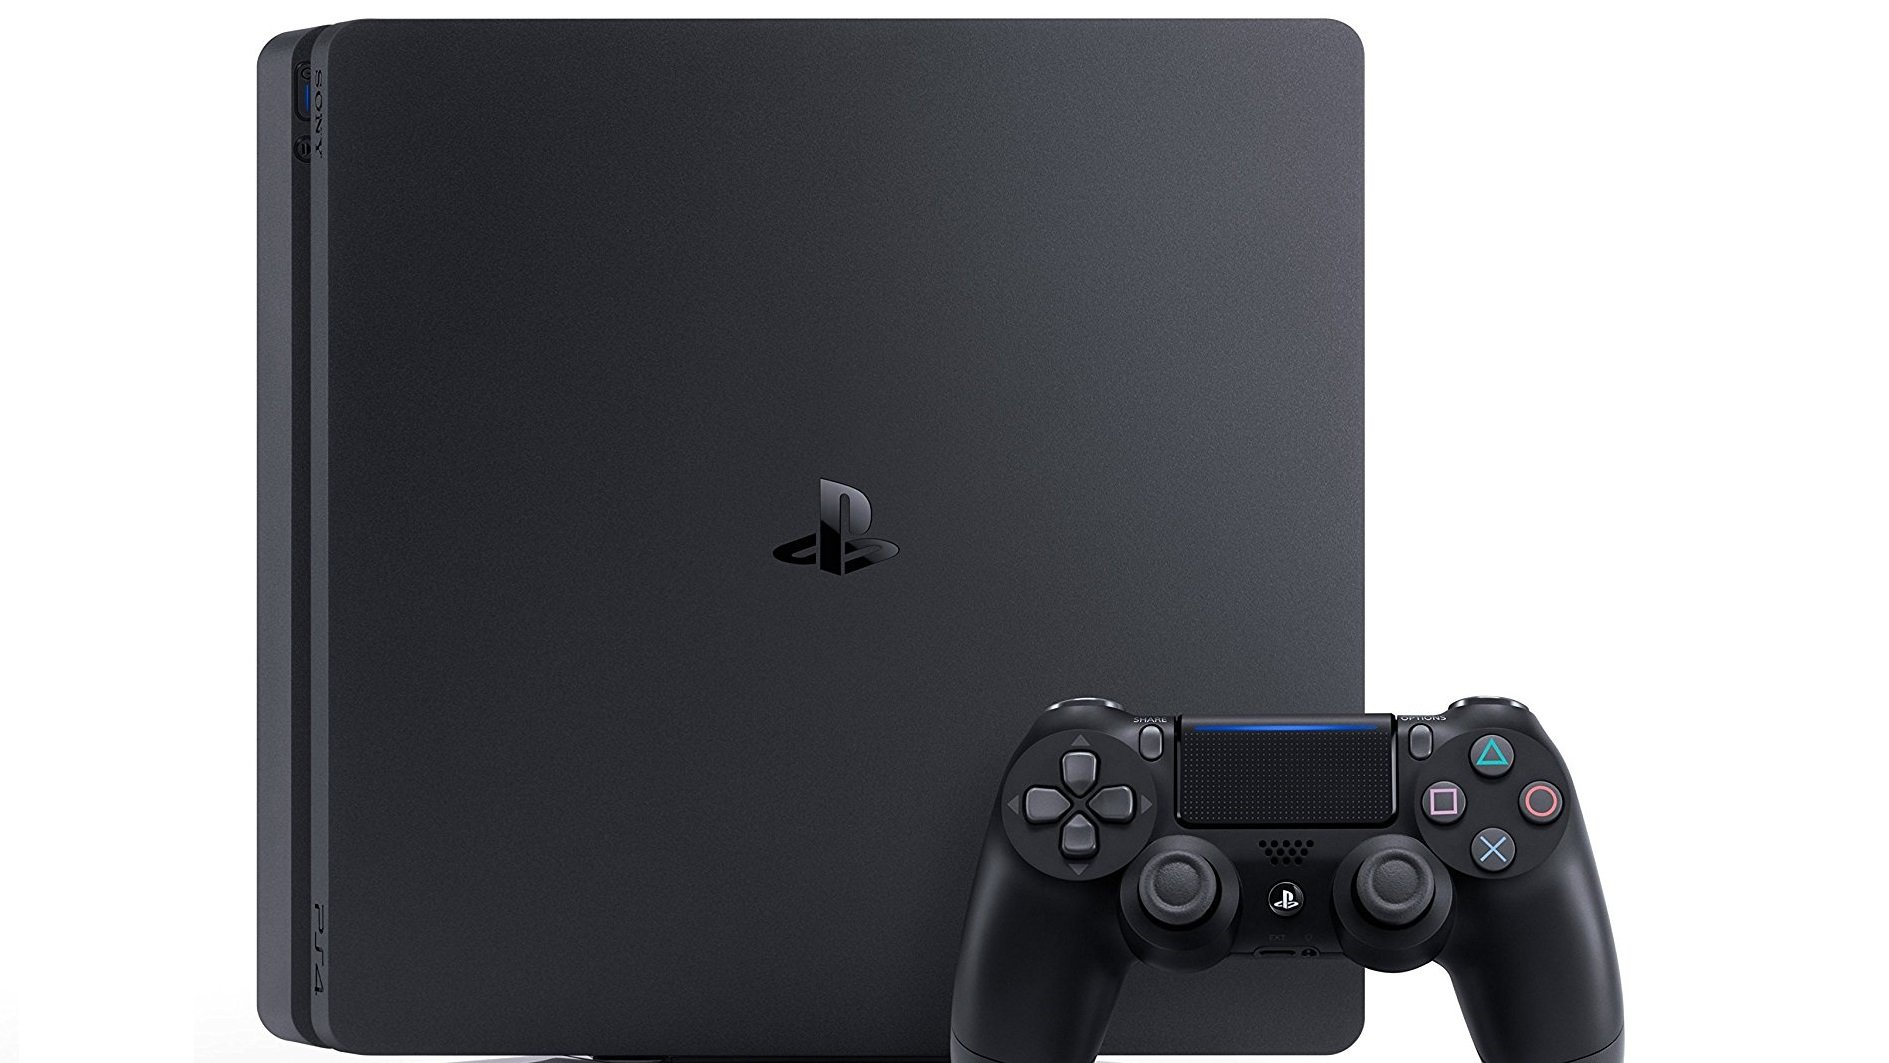 PS4 deals for Prime Day 2019